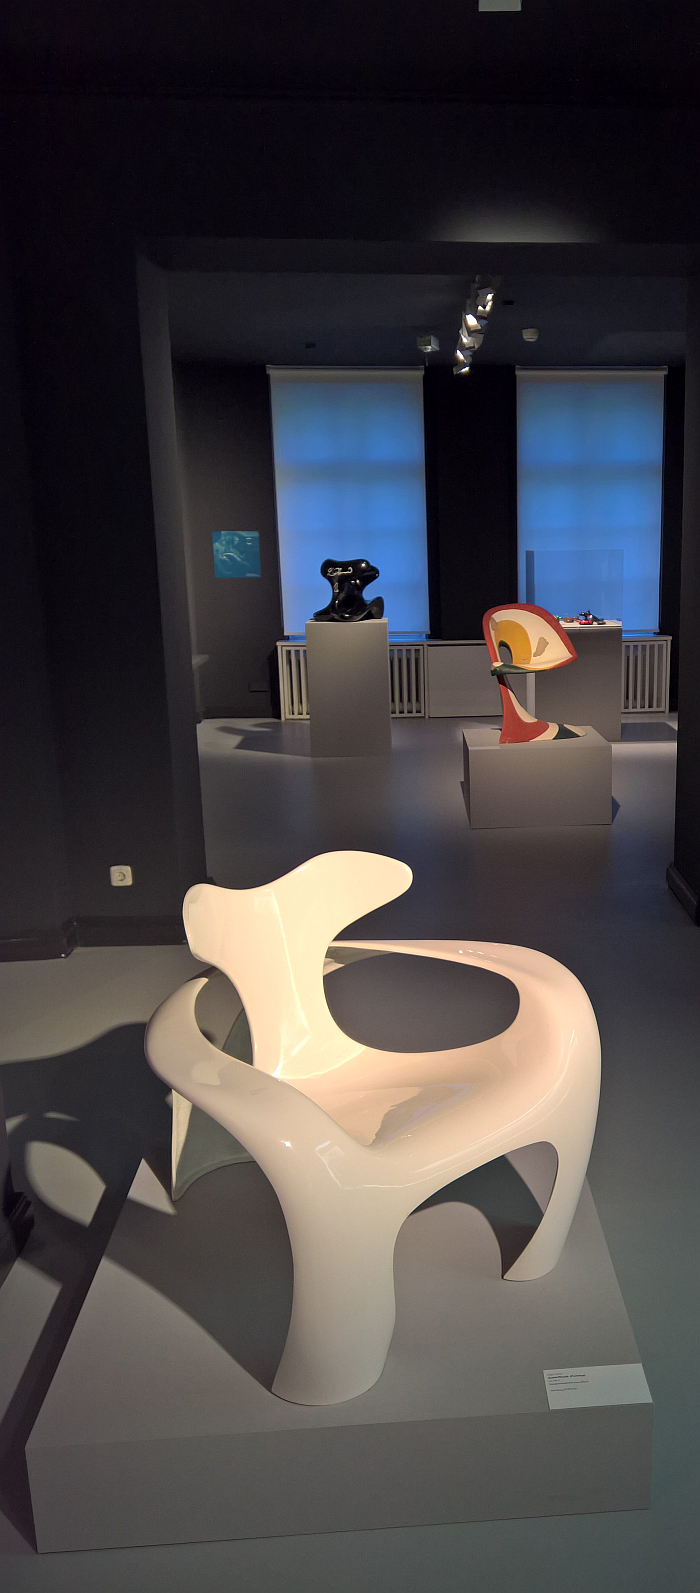 The armchair Swinger by Luigi Colani, and behind it a 1965 prototype, as seen at Luigi Colani and Art Nouveau, Bröhan-Museum, Berlin